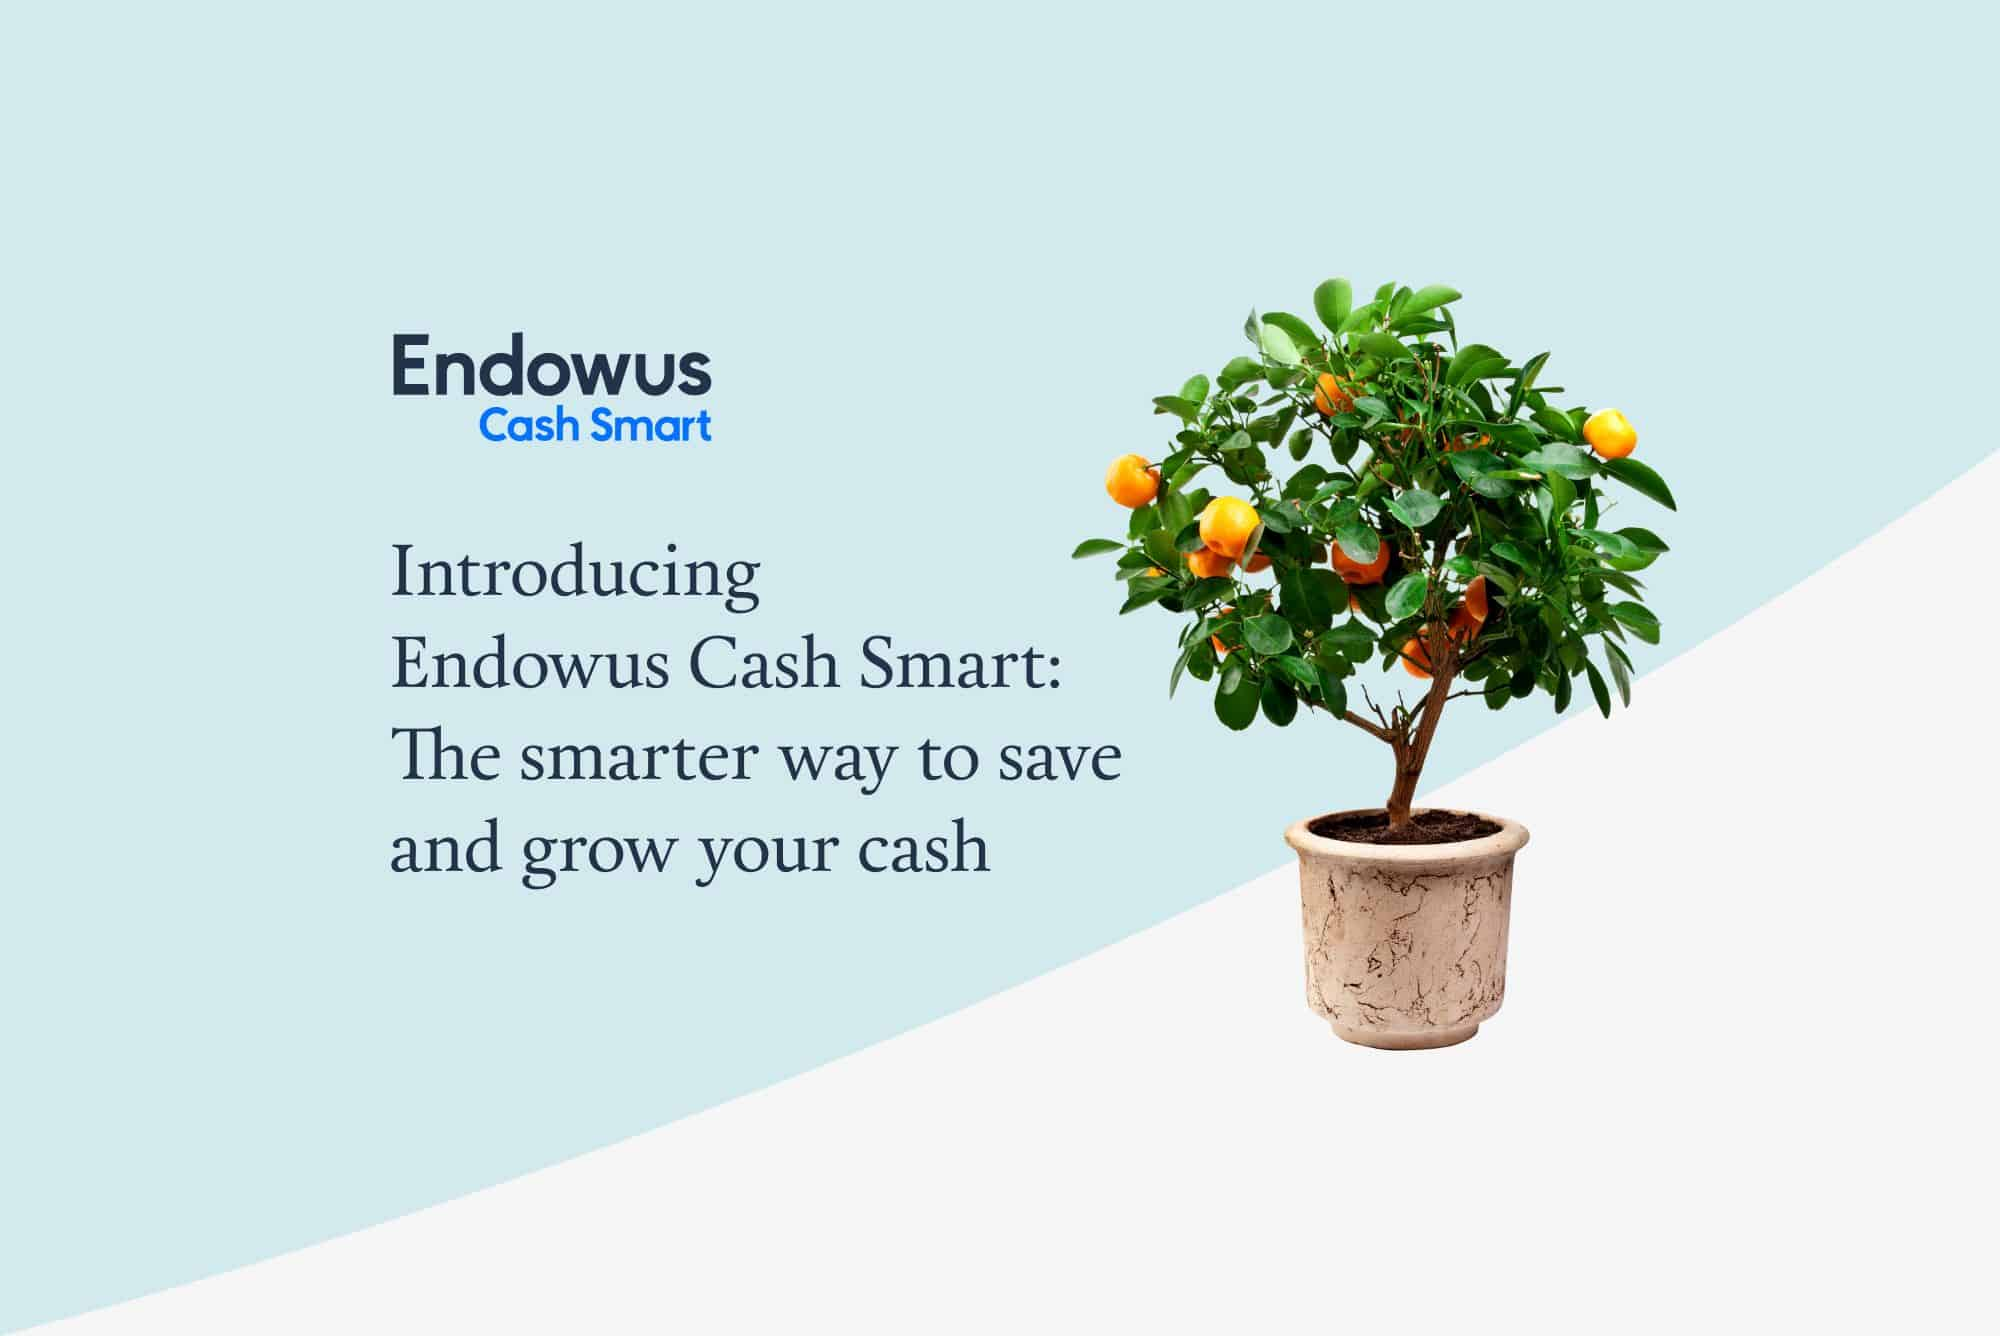 Endowus Cash Smart: Earn up to 2.2% returns per year with no lock-ups or limits